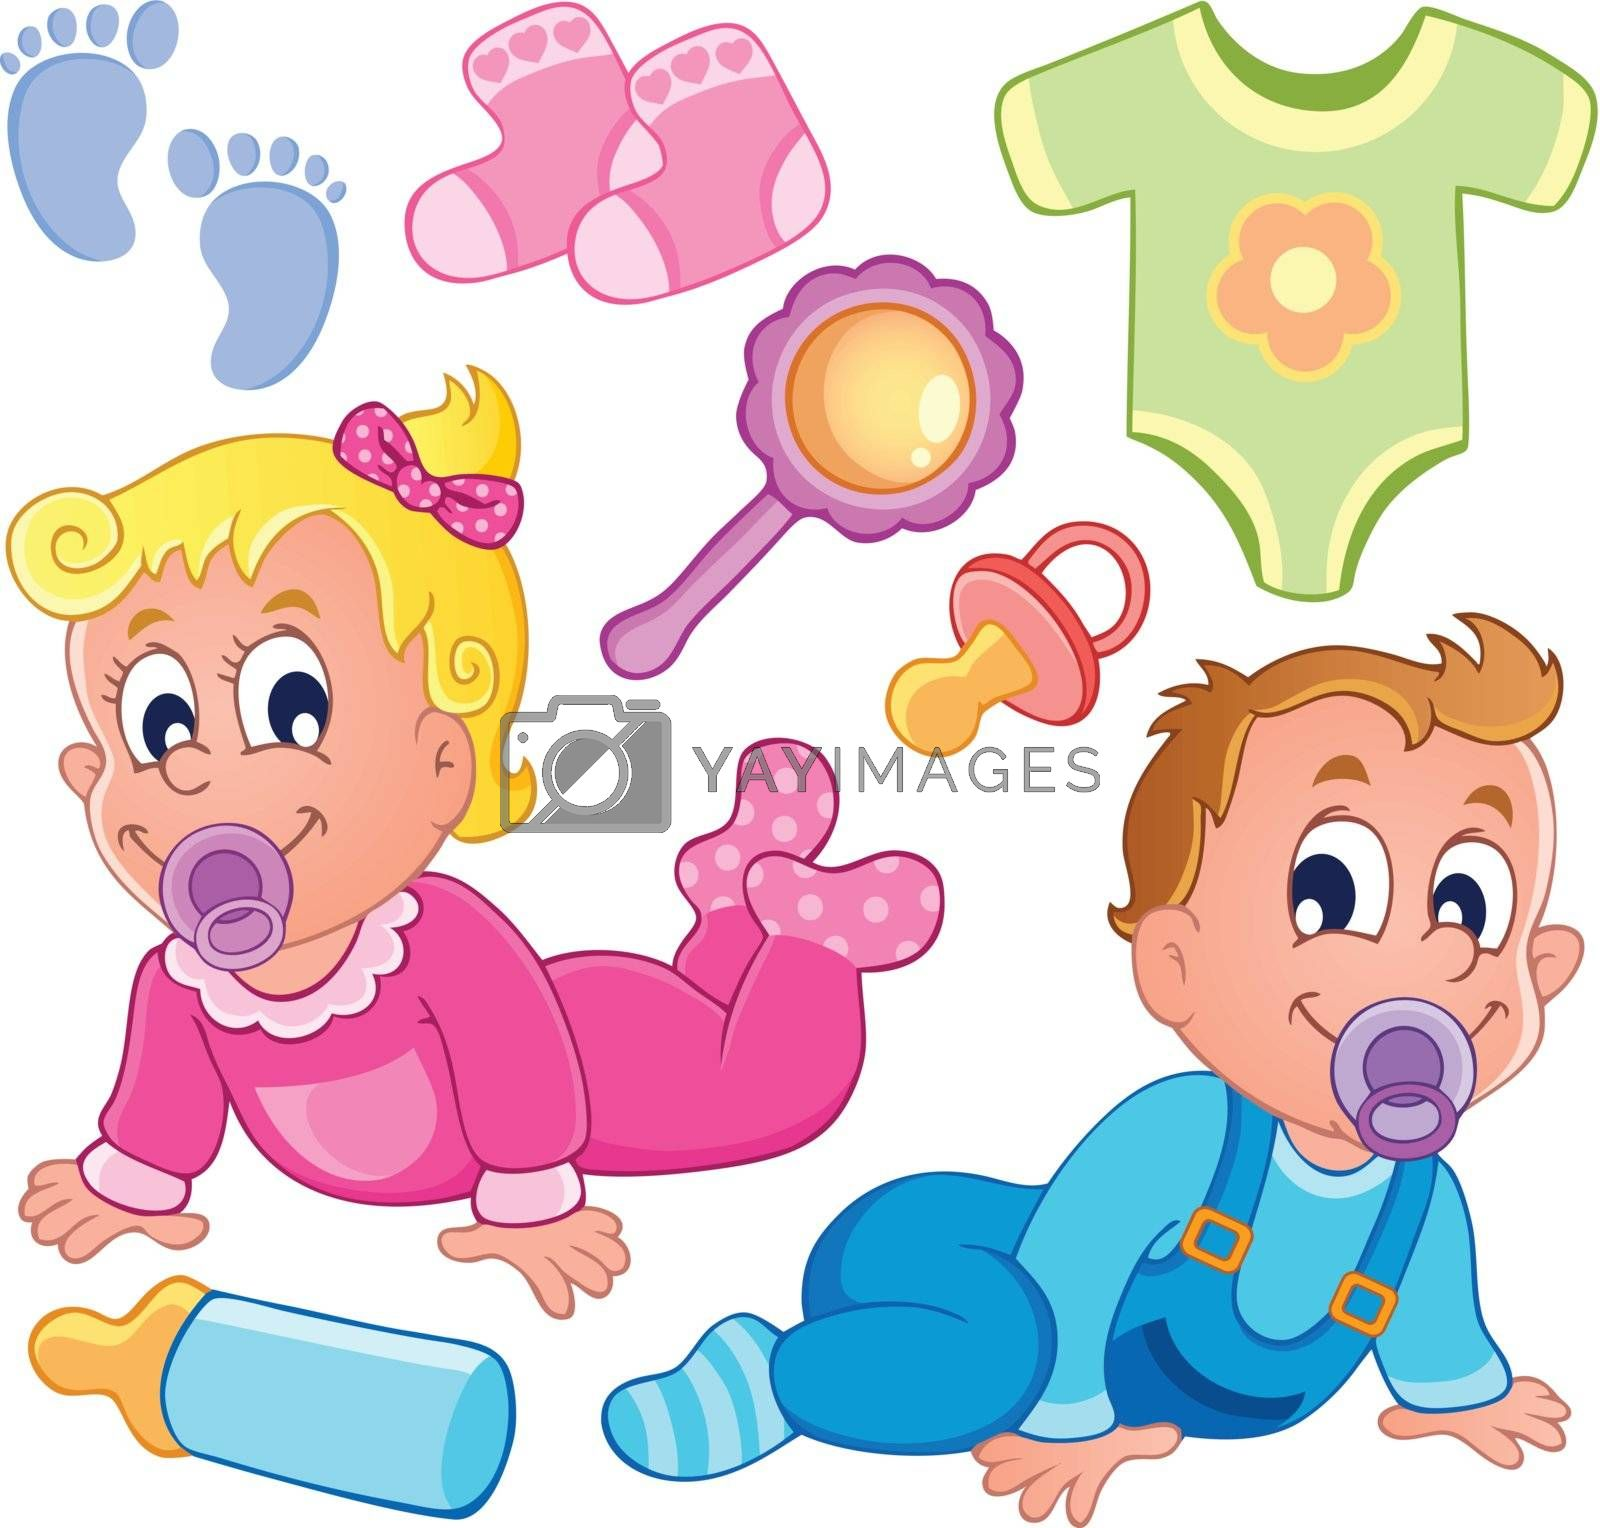 Babies theme collection 2 - vector illustration.